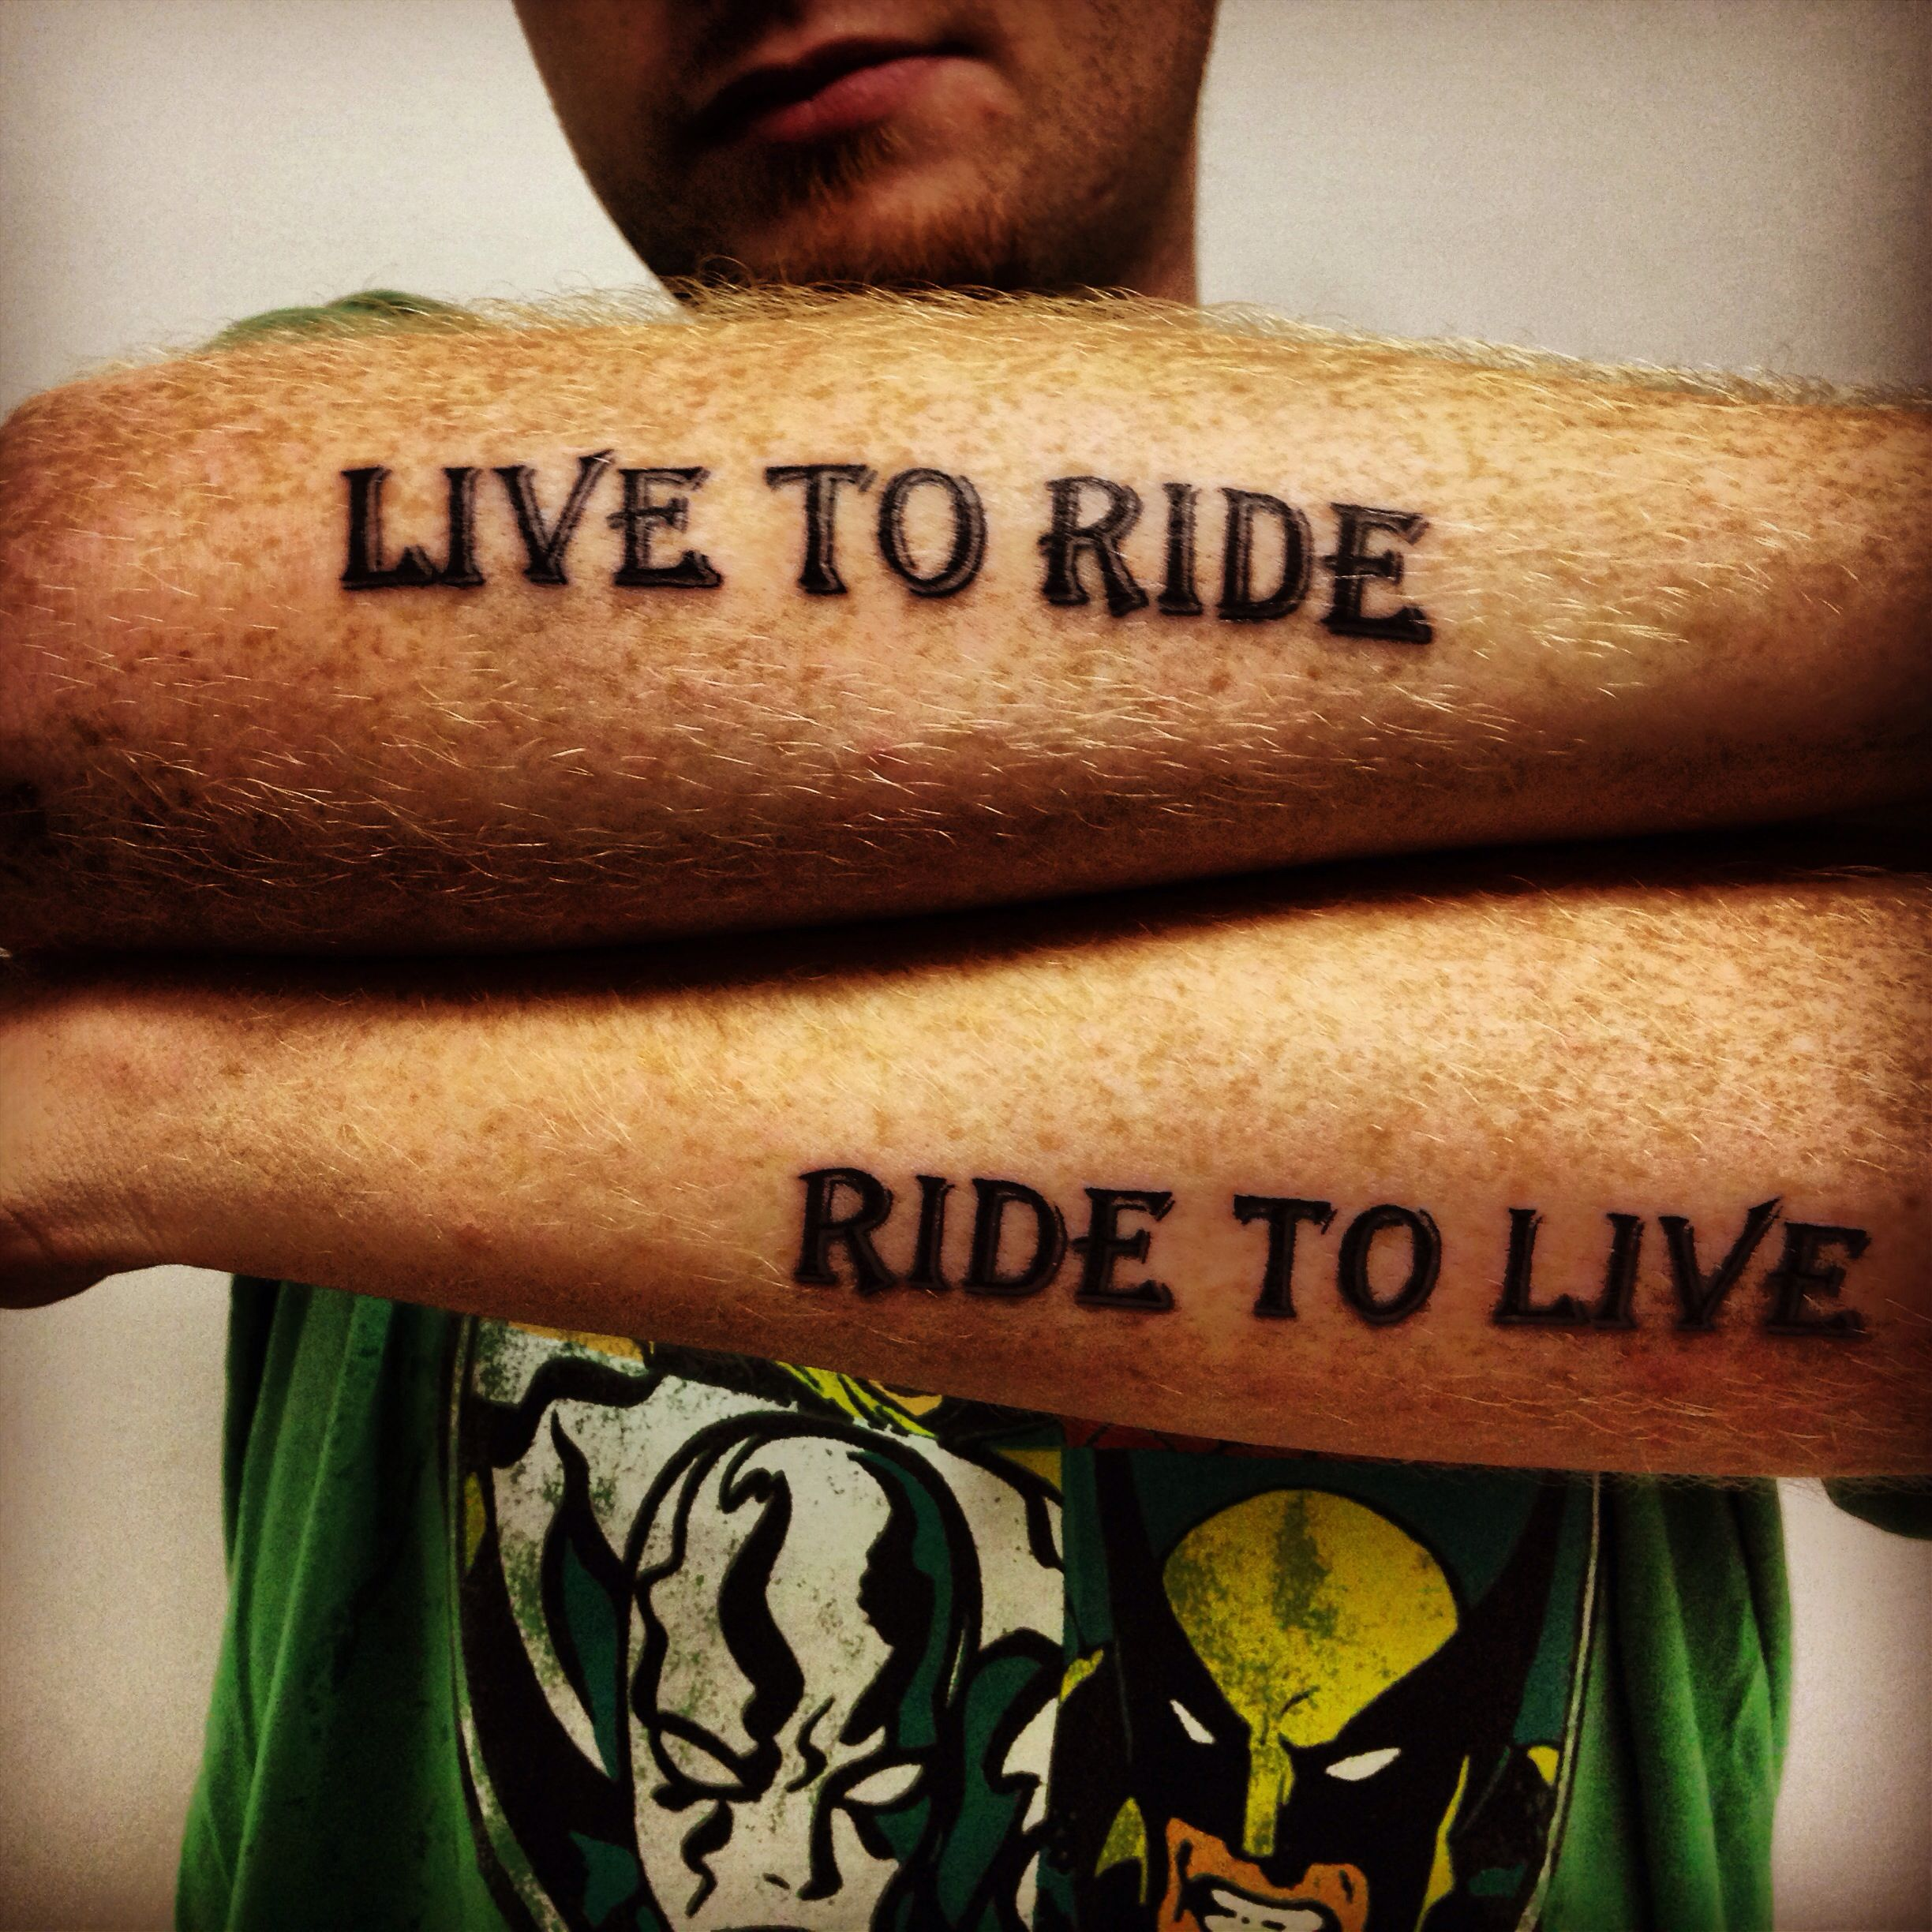 Live To Ride Ride To Live Tattoo Done By Dan Rogers Ink Tattoos